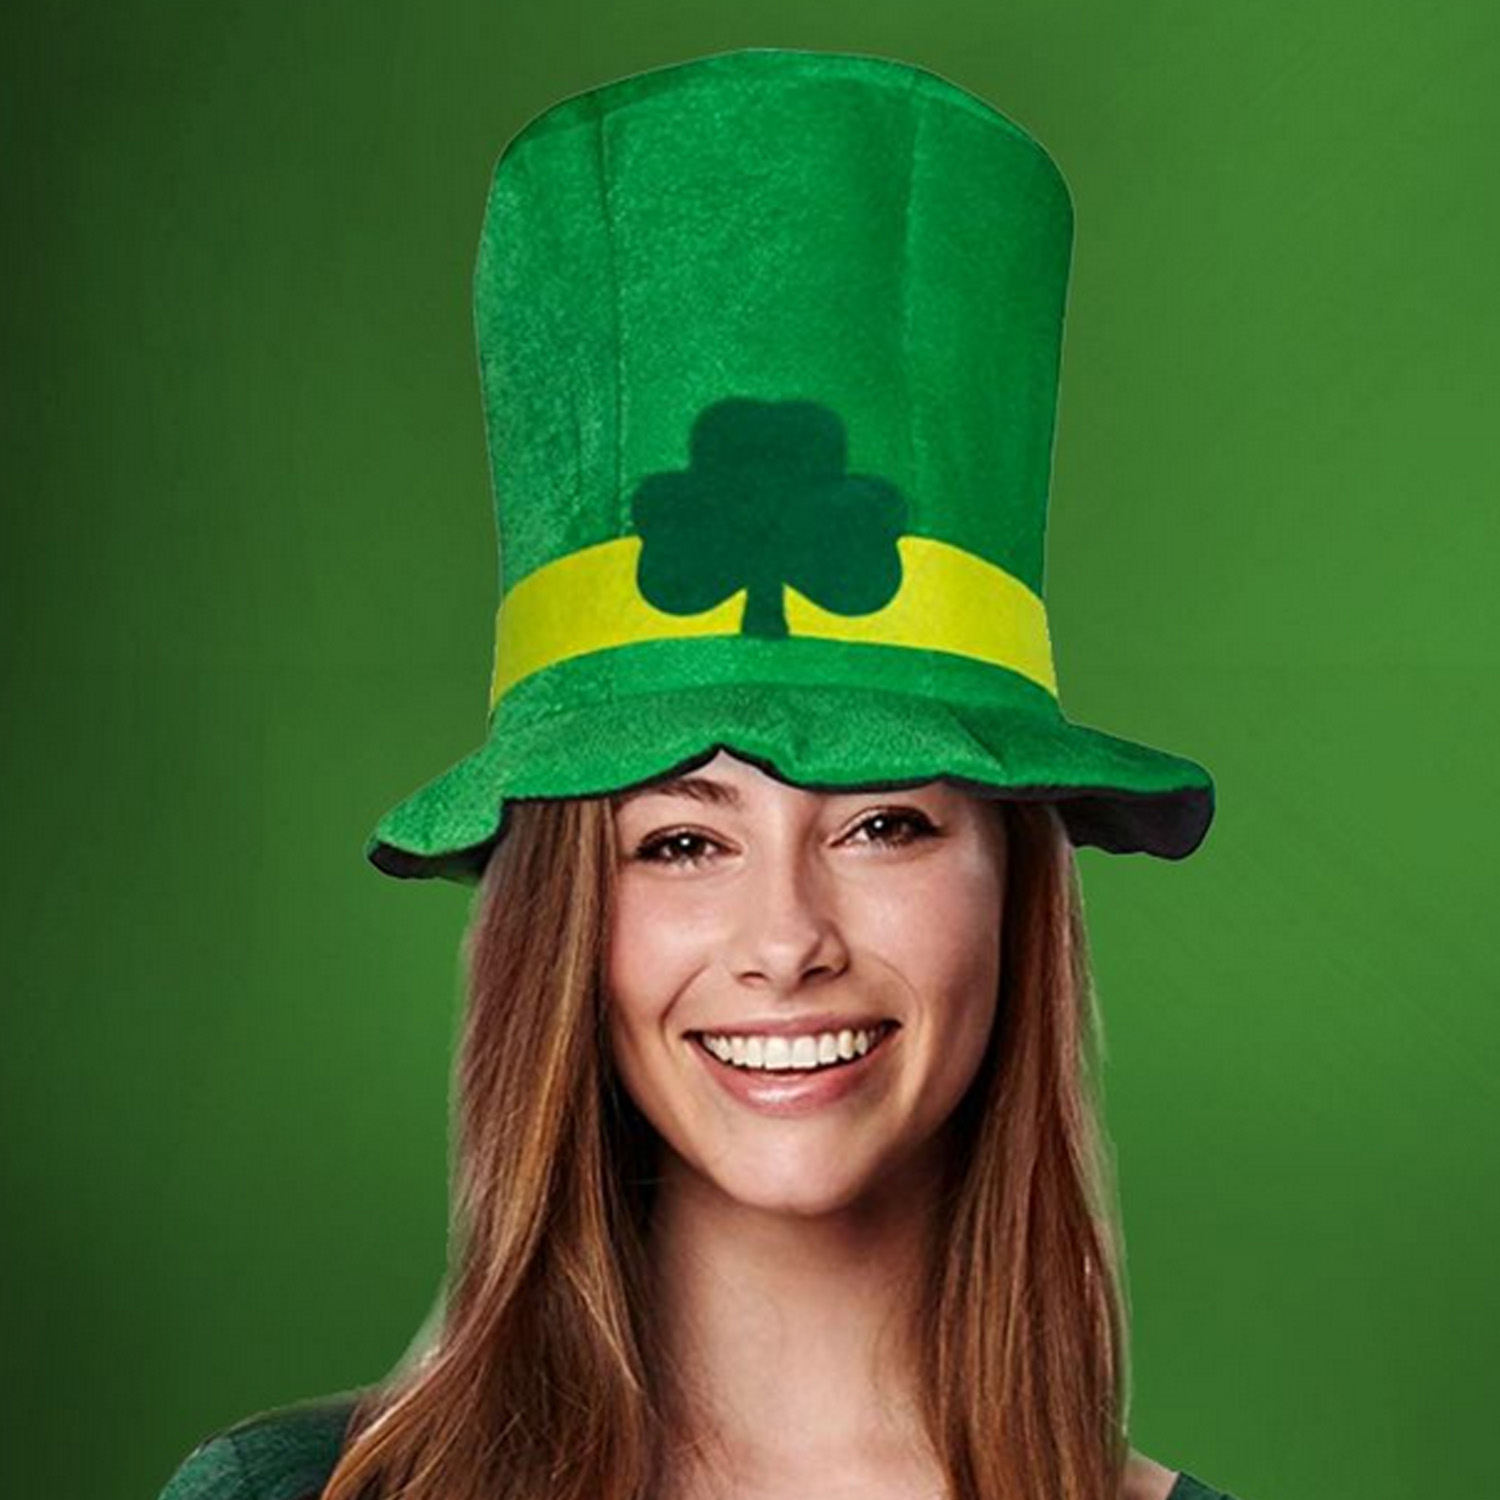 Fashion Irish Saint St Patricks Day Shamrock Lucky Charm Green Velvet Top Hat Party Festival Celebration Cap Costume Accessories